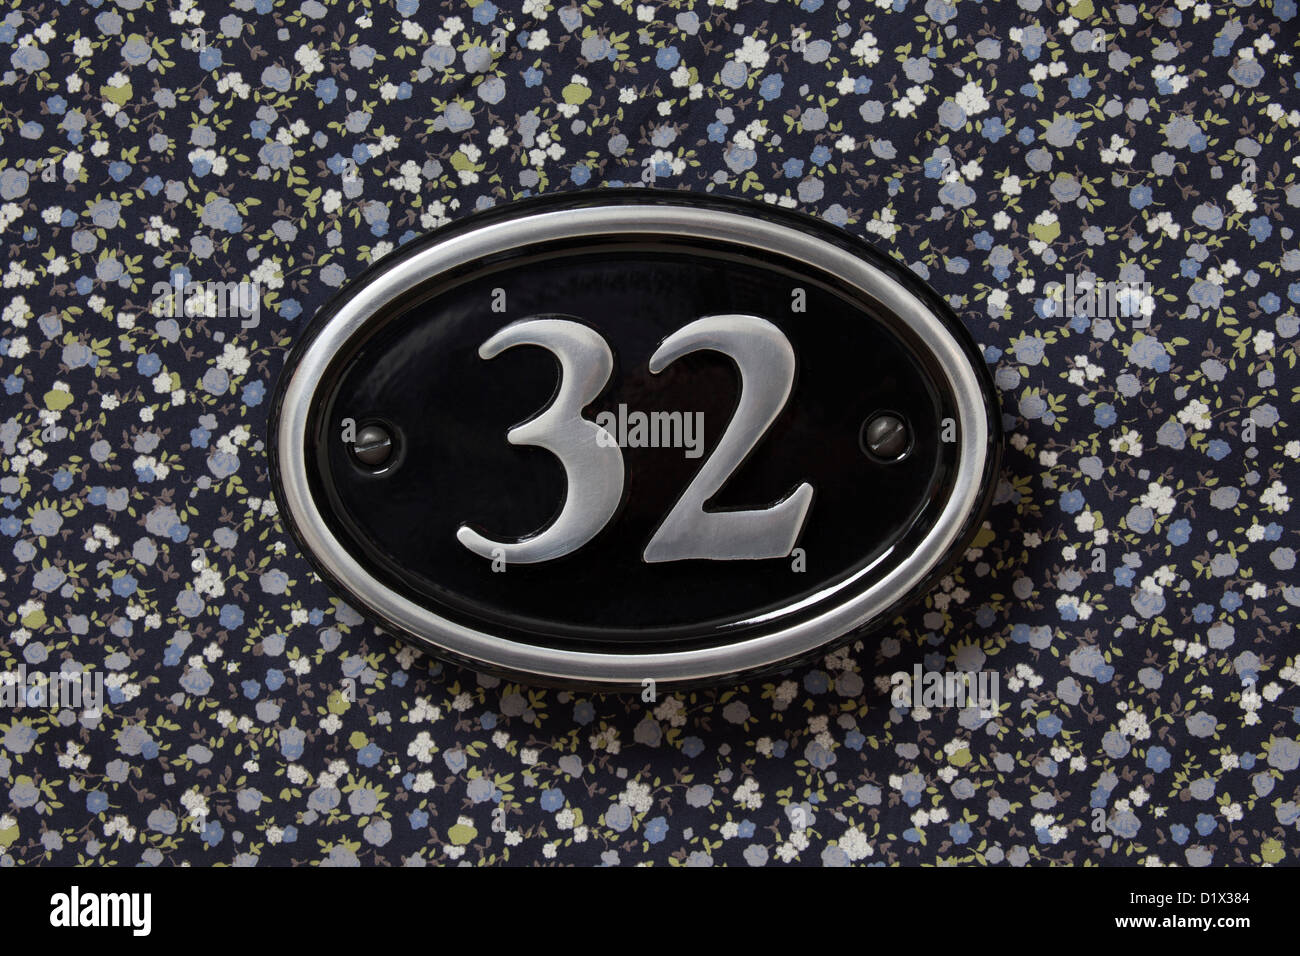 Number 32 metal silver and black house sign on a floral background. Stock Photo